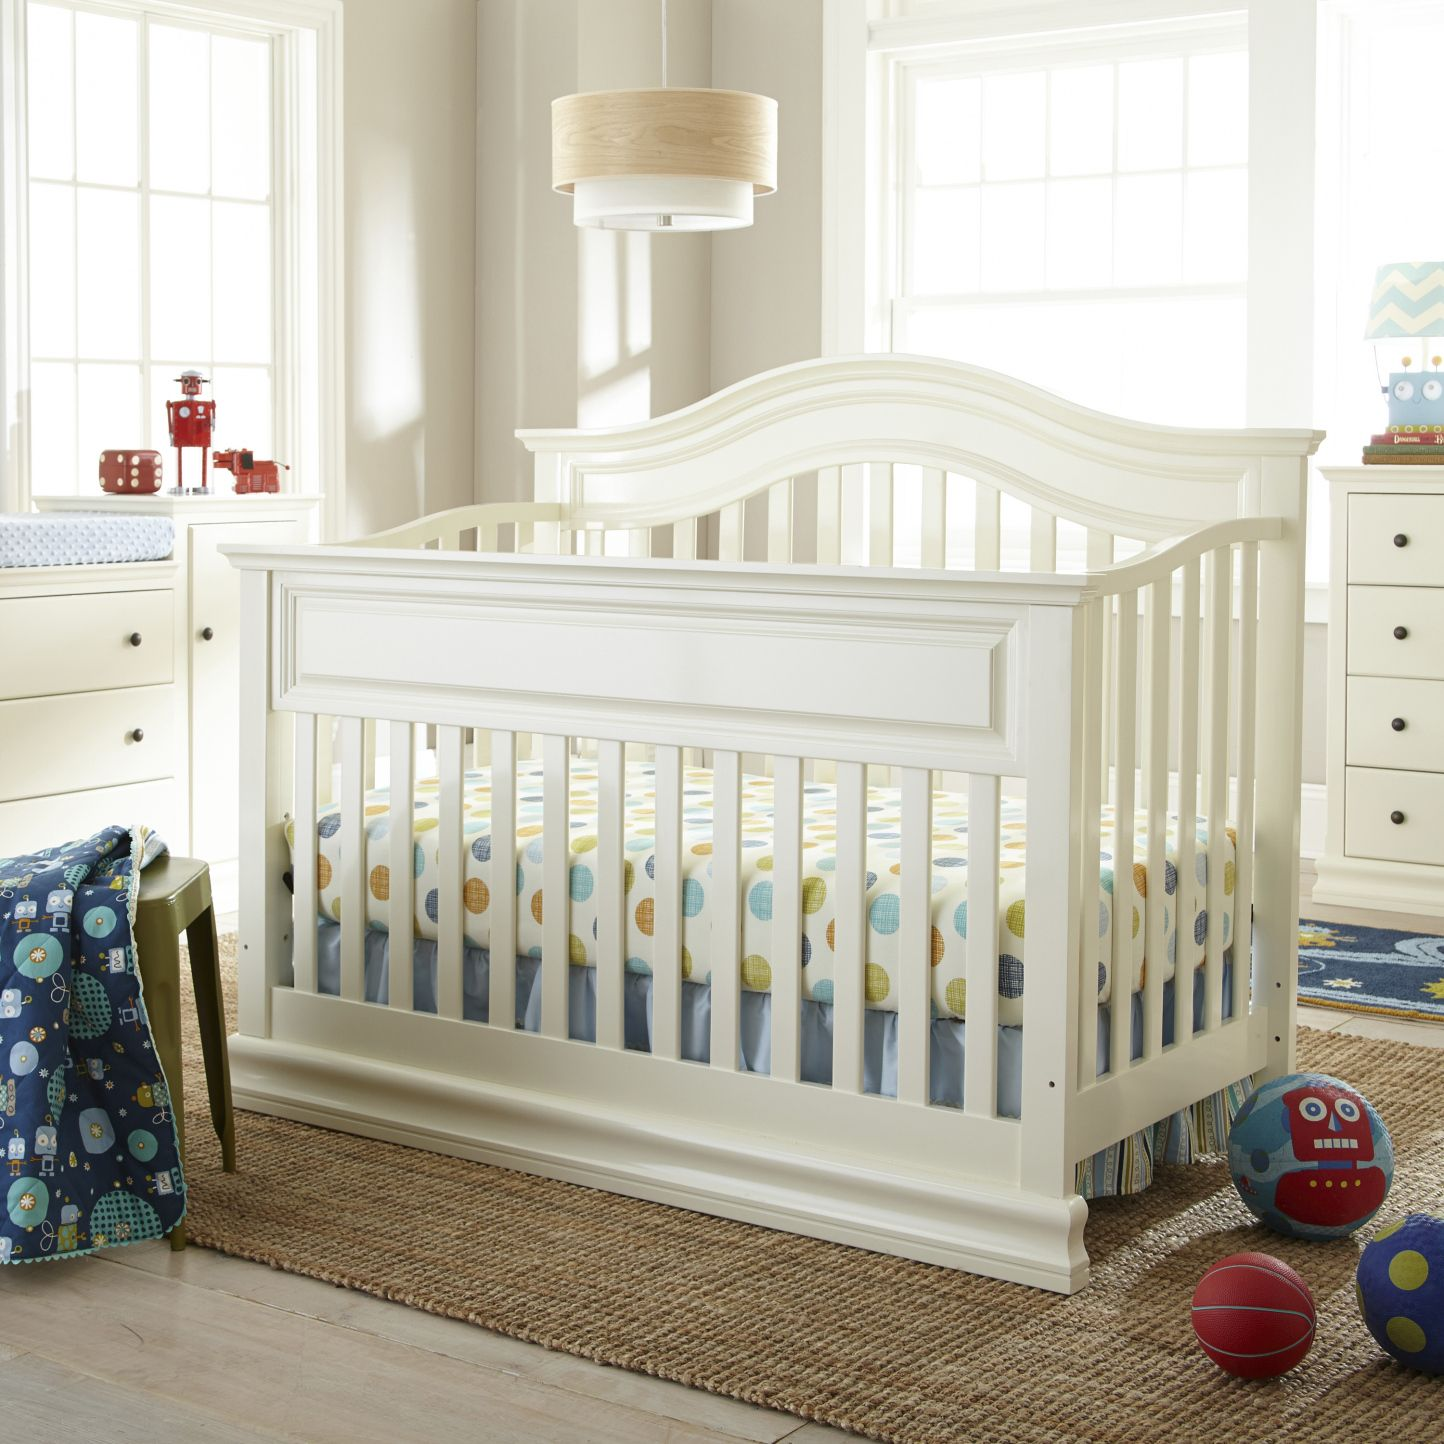 Savanna Baby Furniture - Interior Paint Color Ideas Check more at ...